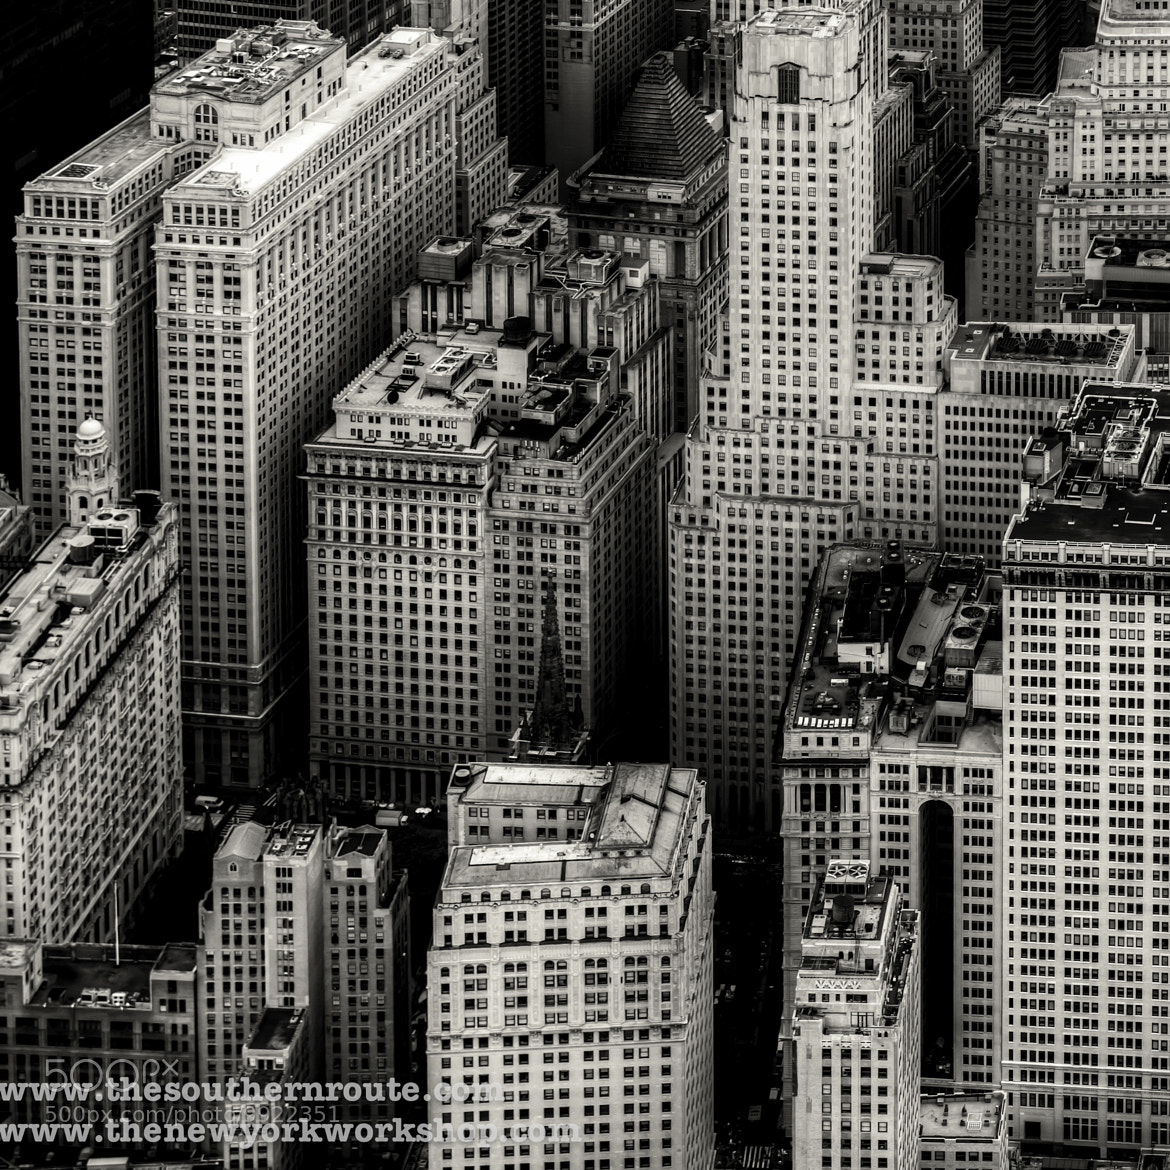 Photograph Tombs of New York by regis boileau on 500px